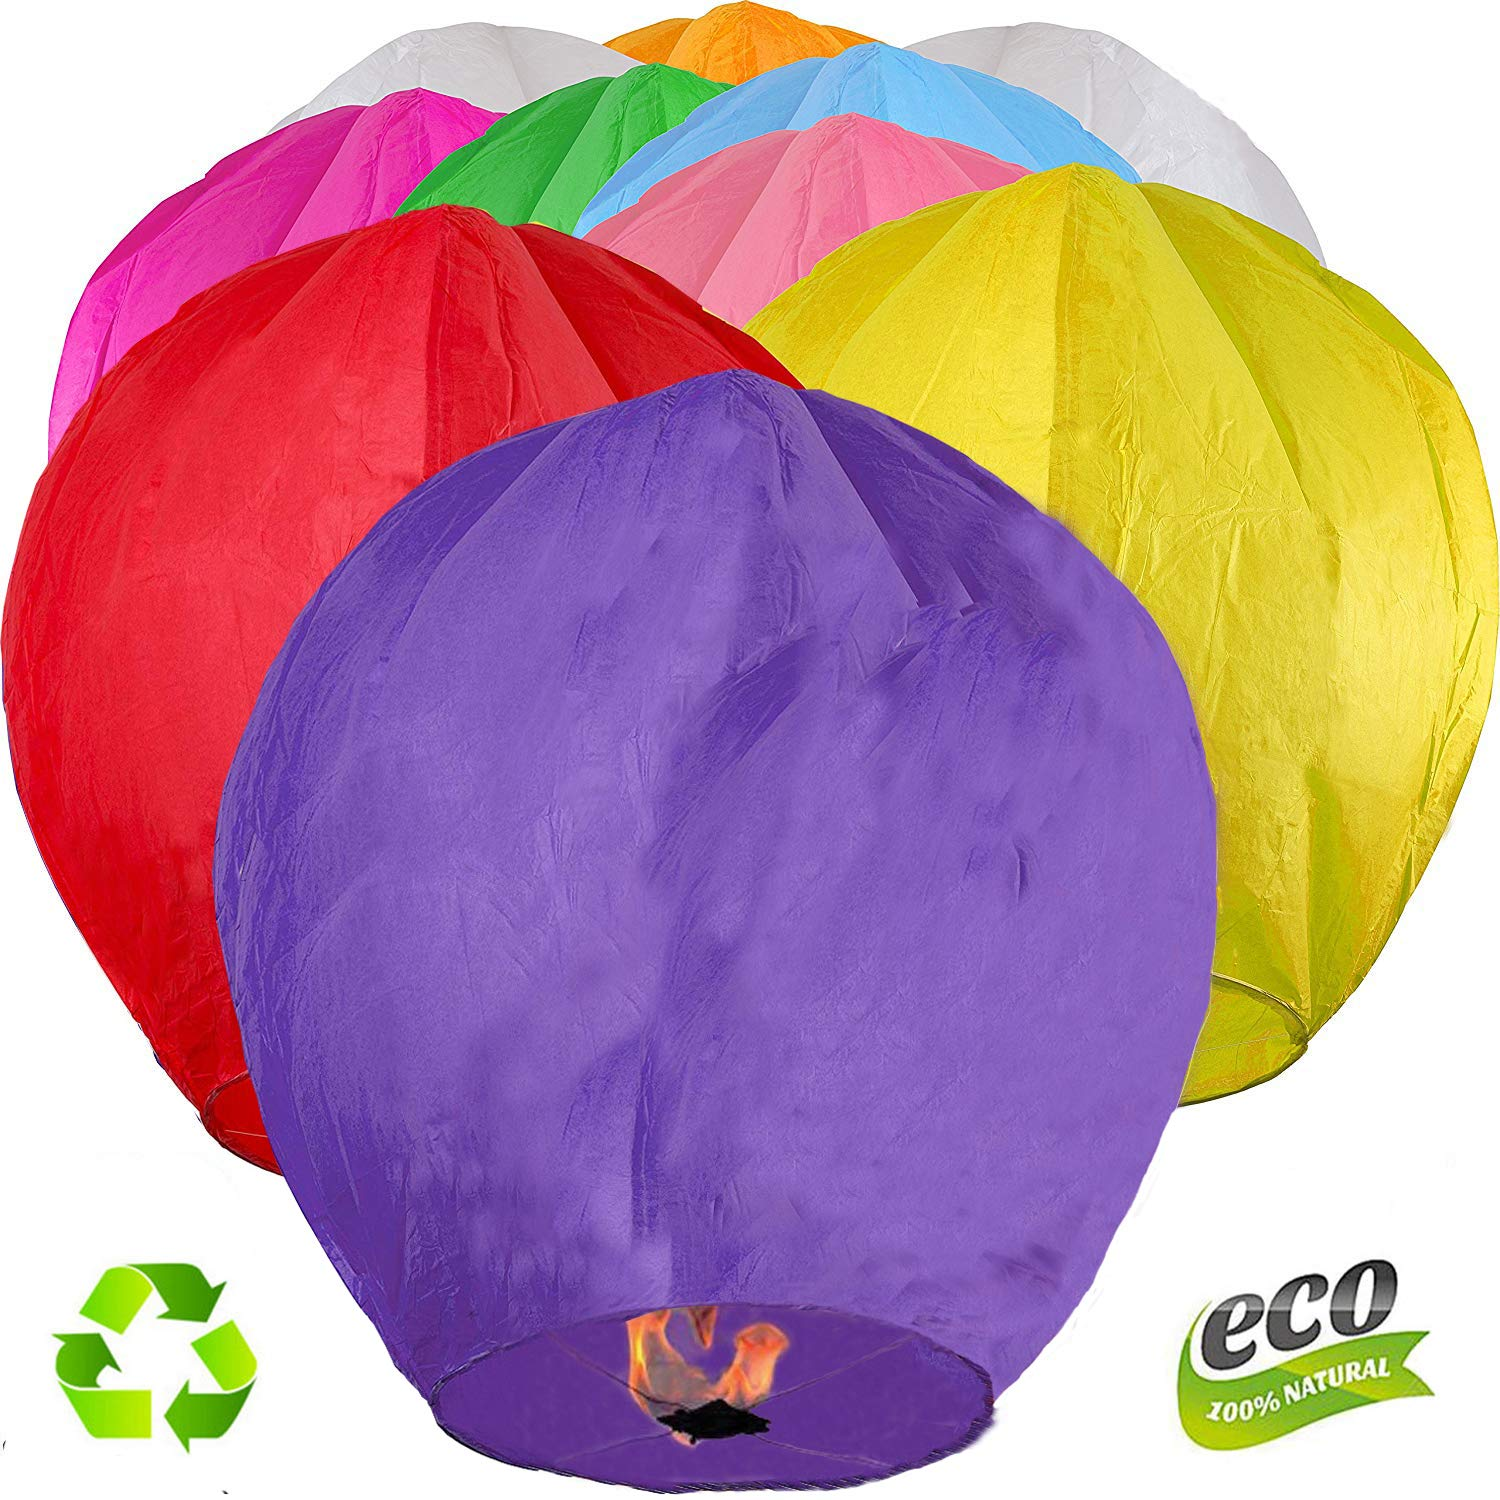 Chinese Sky Lanterns - Eco Friendly, 100% Biodegradable-for Any Birthdays, Parties, New Years,Memorial Ceremonies, and More(Mix) (30)